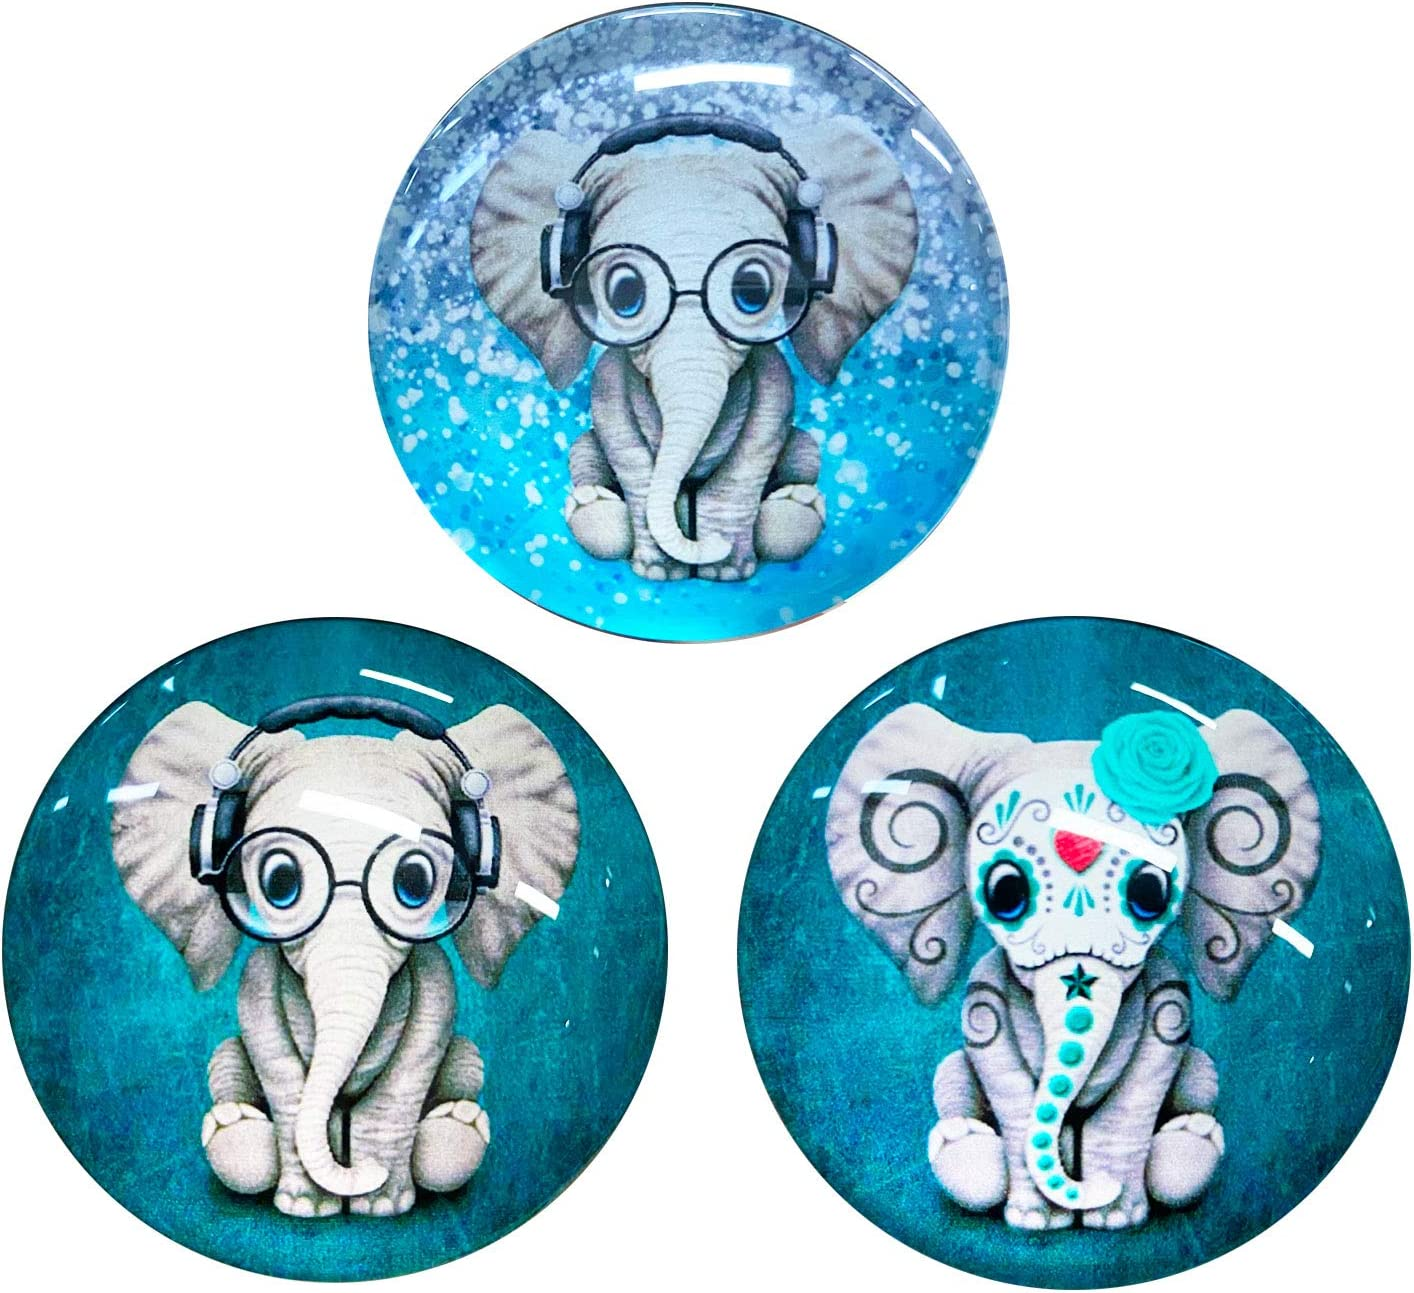 Knocyesnt Cristal Refrigerator Magnets Fridge Max 89% OFF 3D 2021 spring and summer new fo Cute